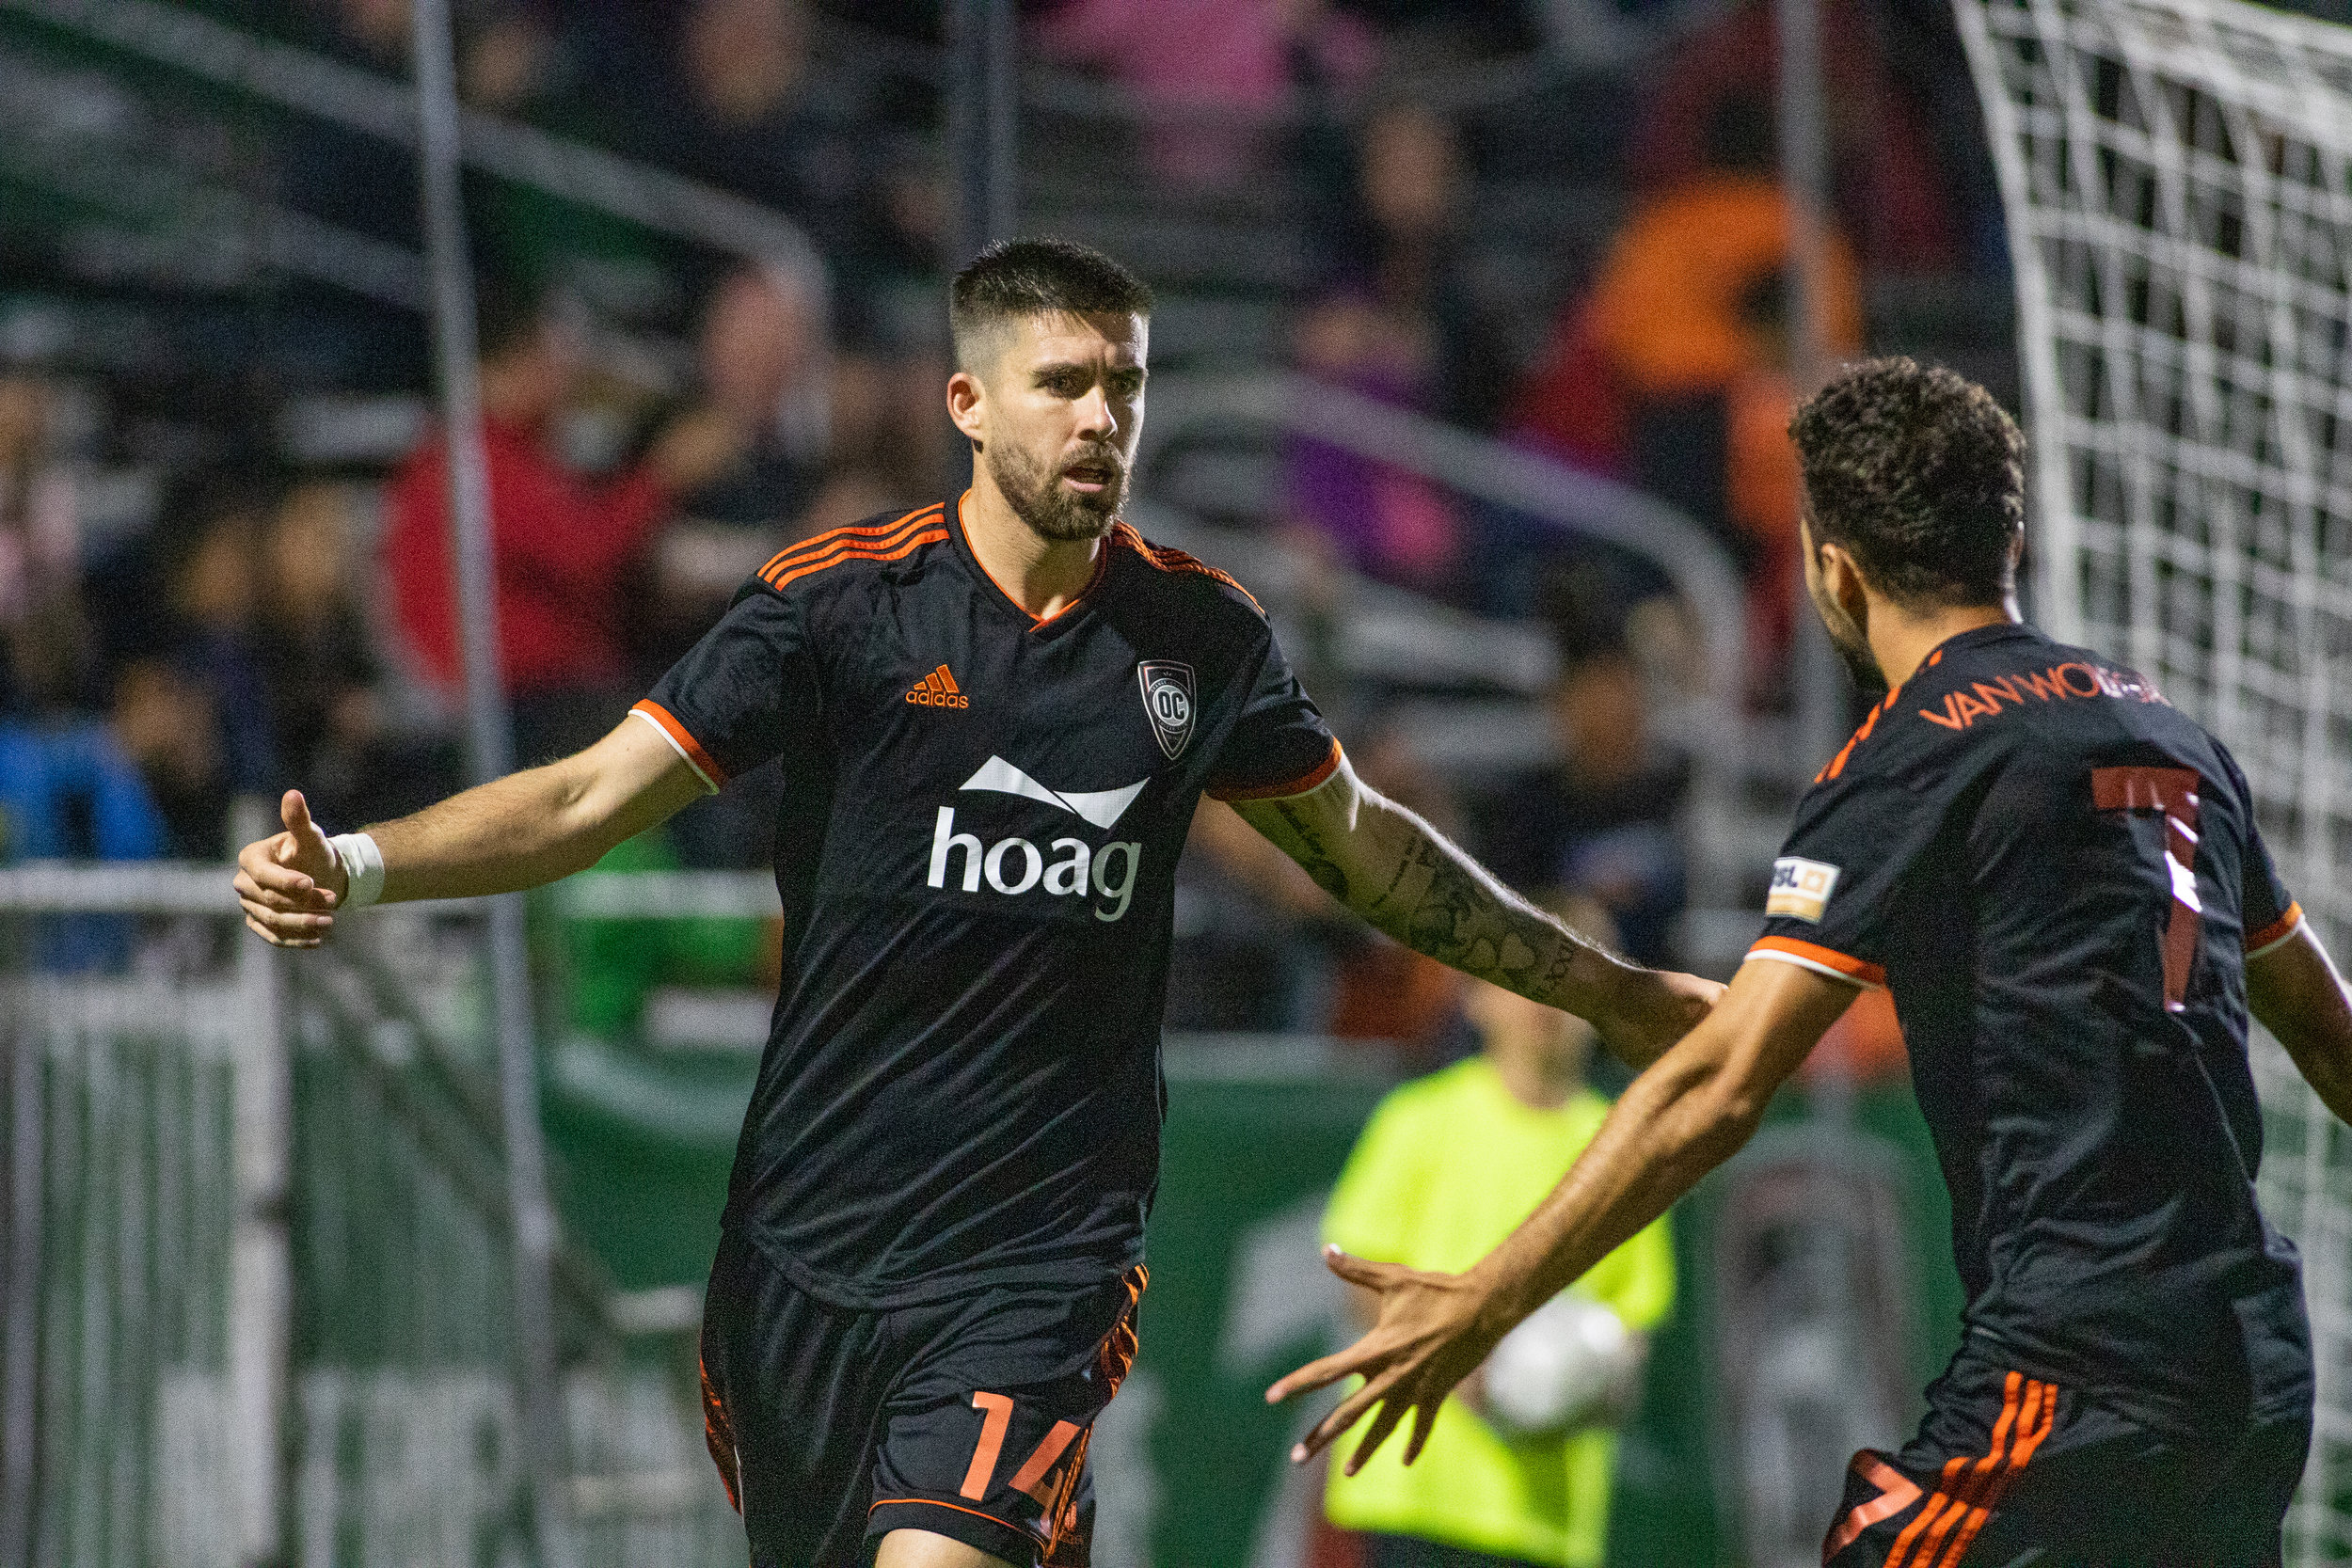 Orange County SC midfielder Aodhan Quinn celebrates with teammate Jerry van Wolfgang after scoring in their 2-2 draw against Austin Bold FC.  |   Photo courtesy of Orange County SC/Liza Rosales